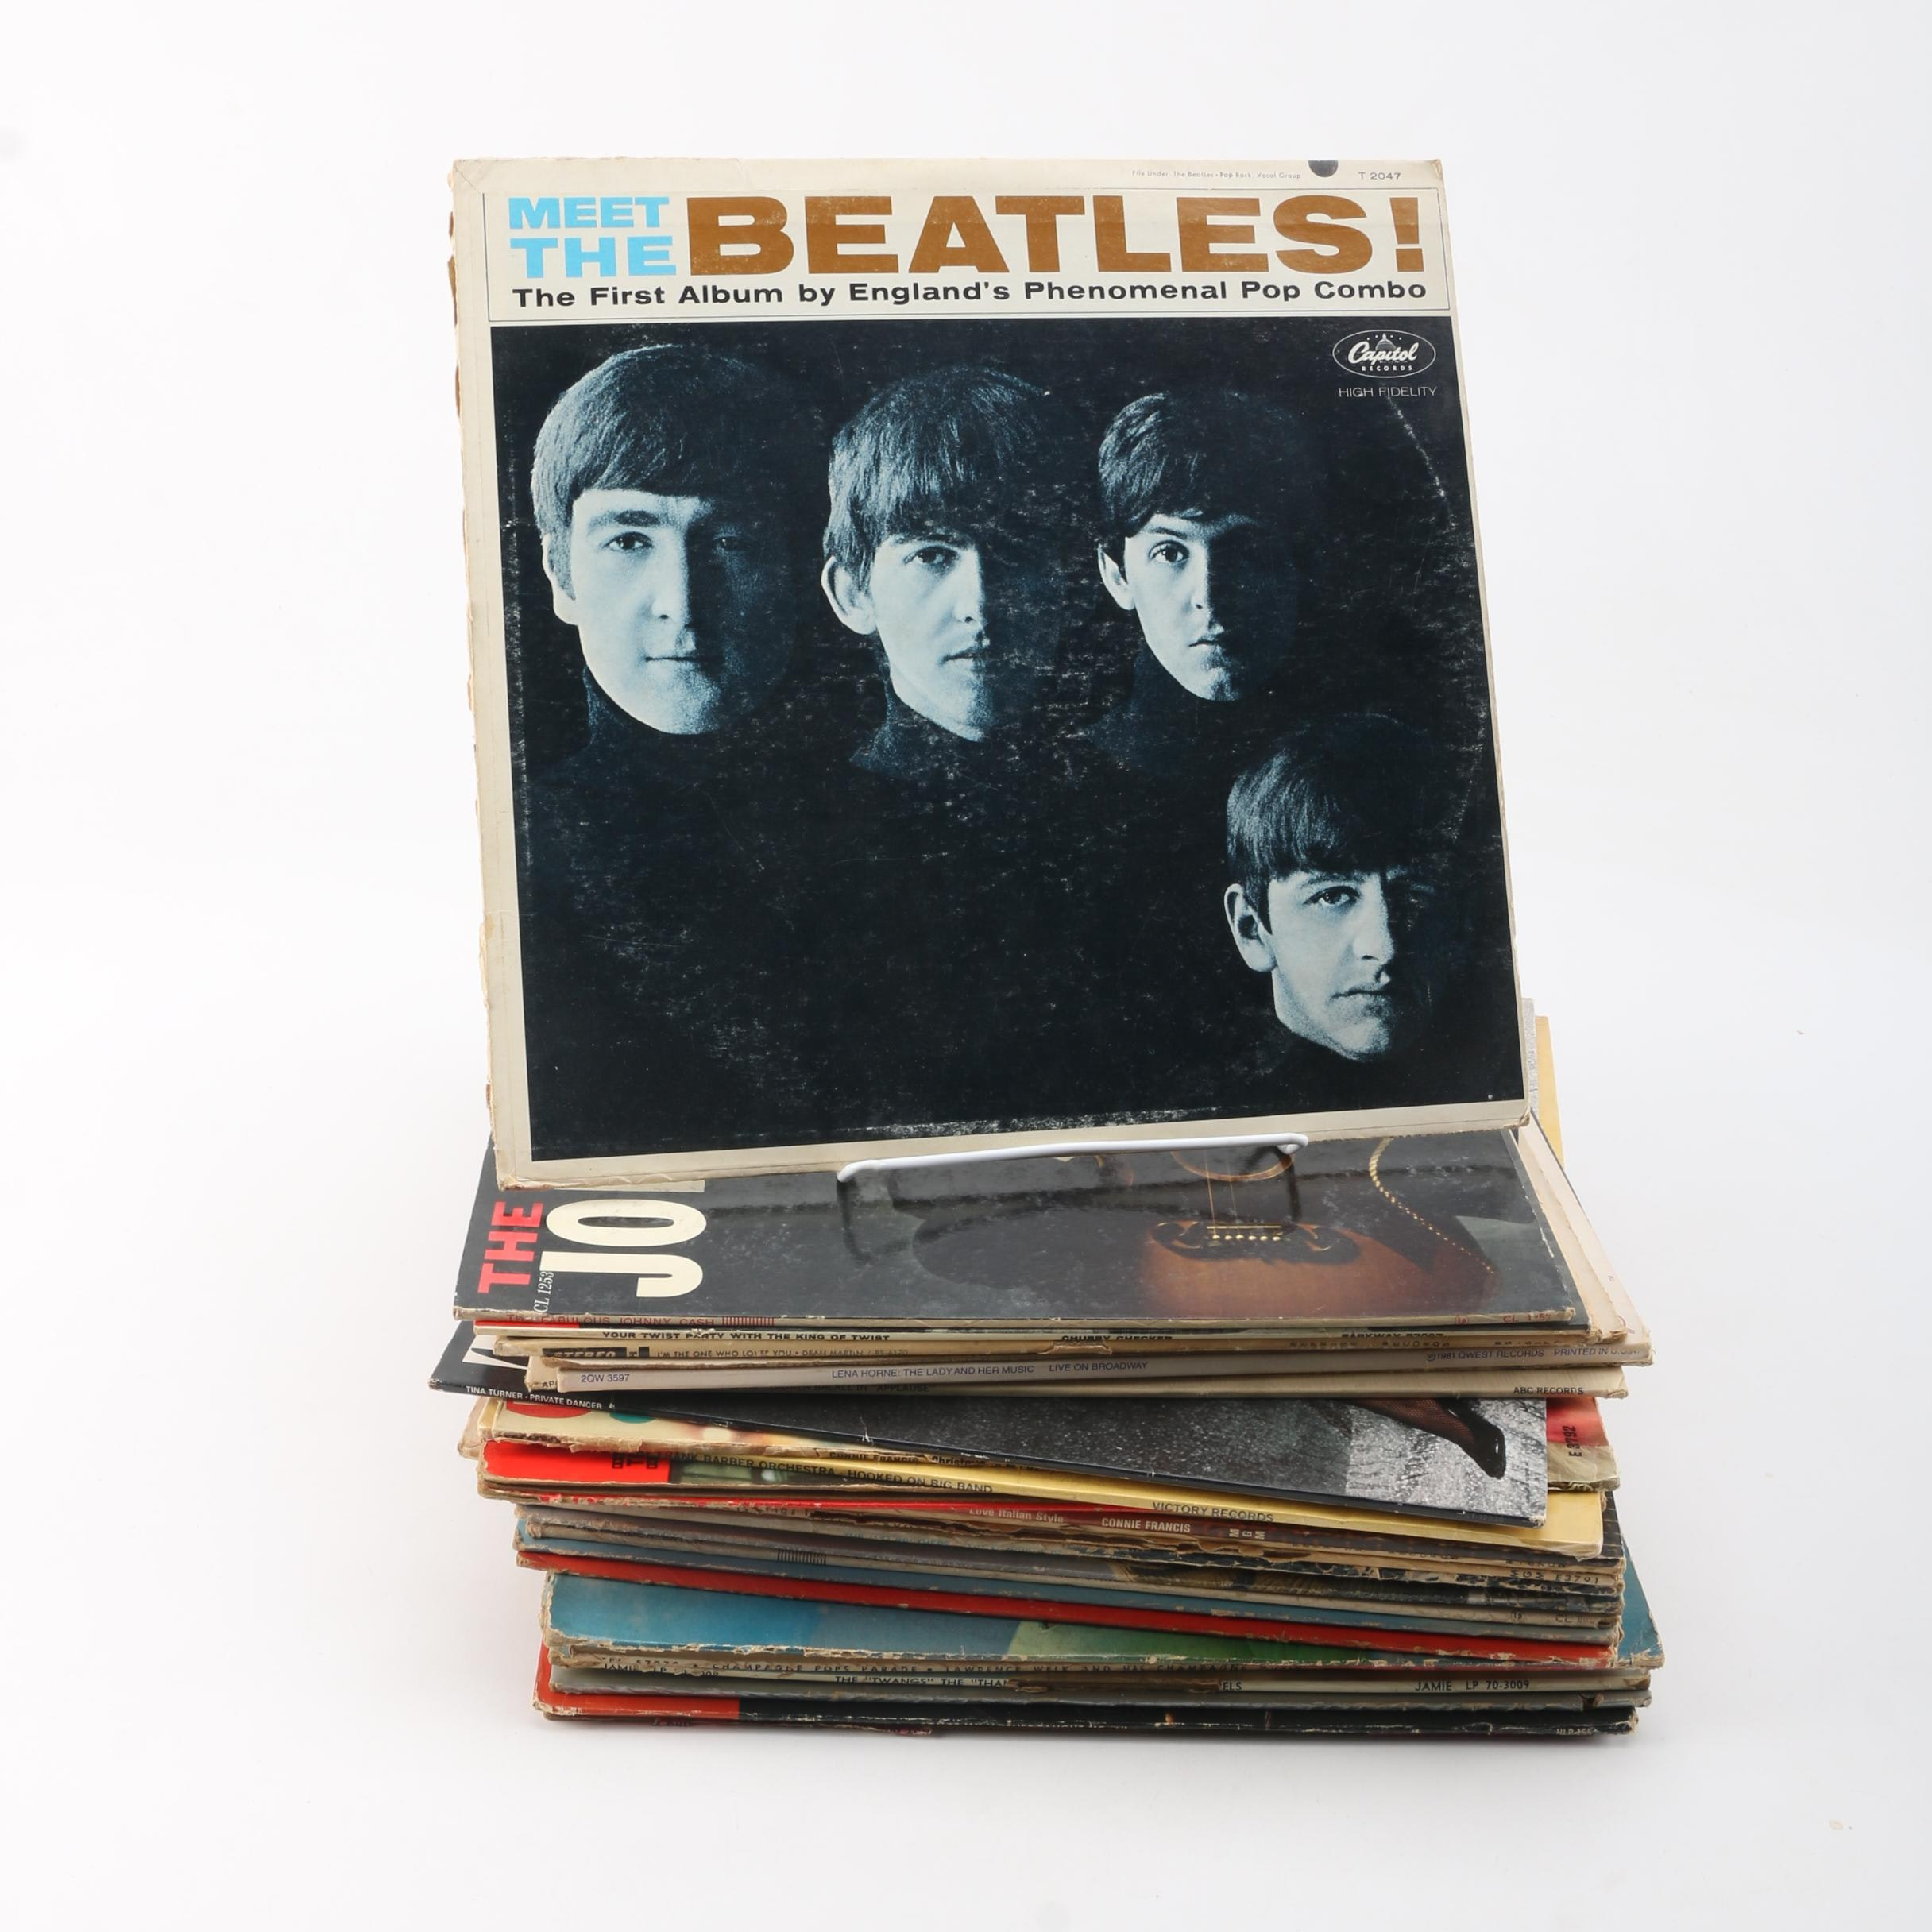 LPs Including The Beatles, Dean Martin, Chubby Checker, and Johnny Cash